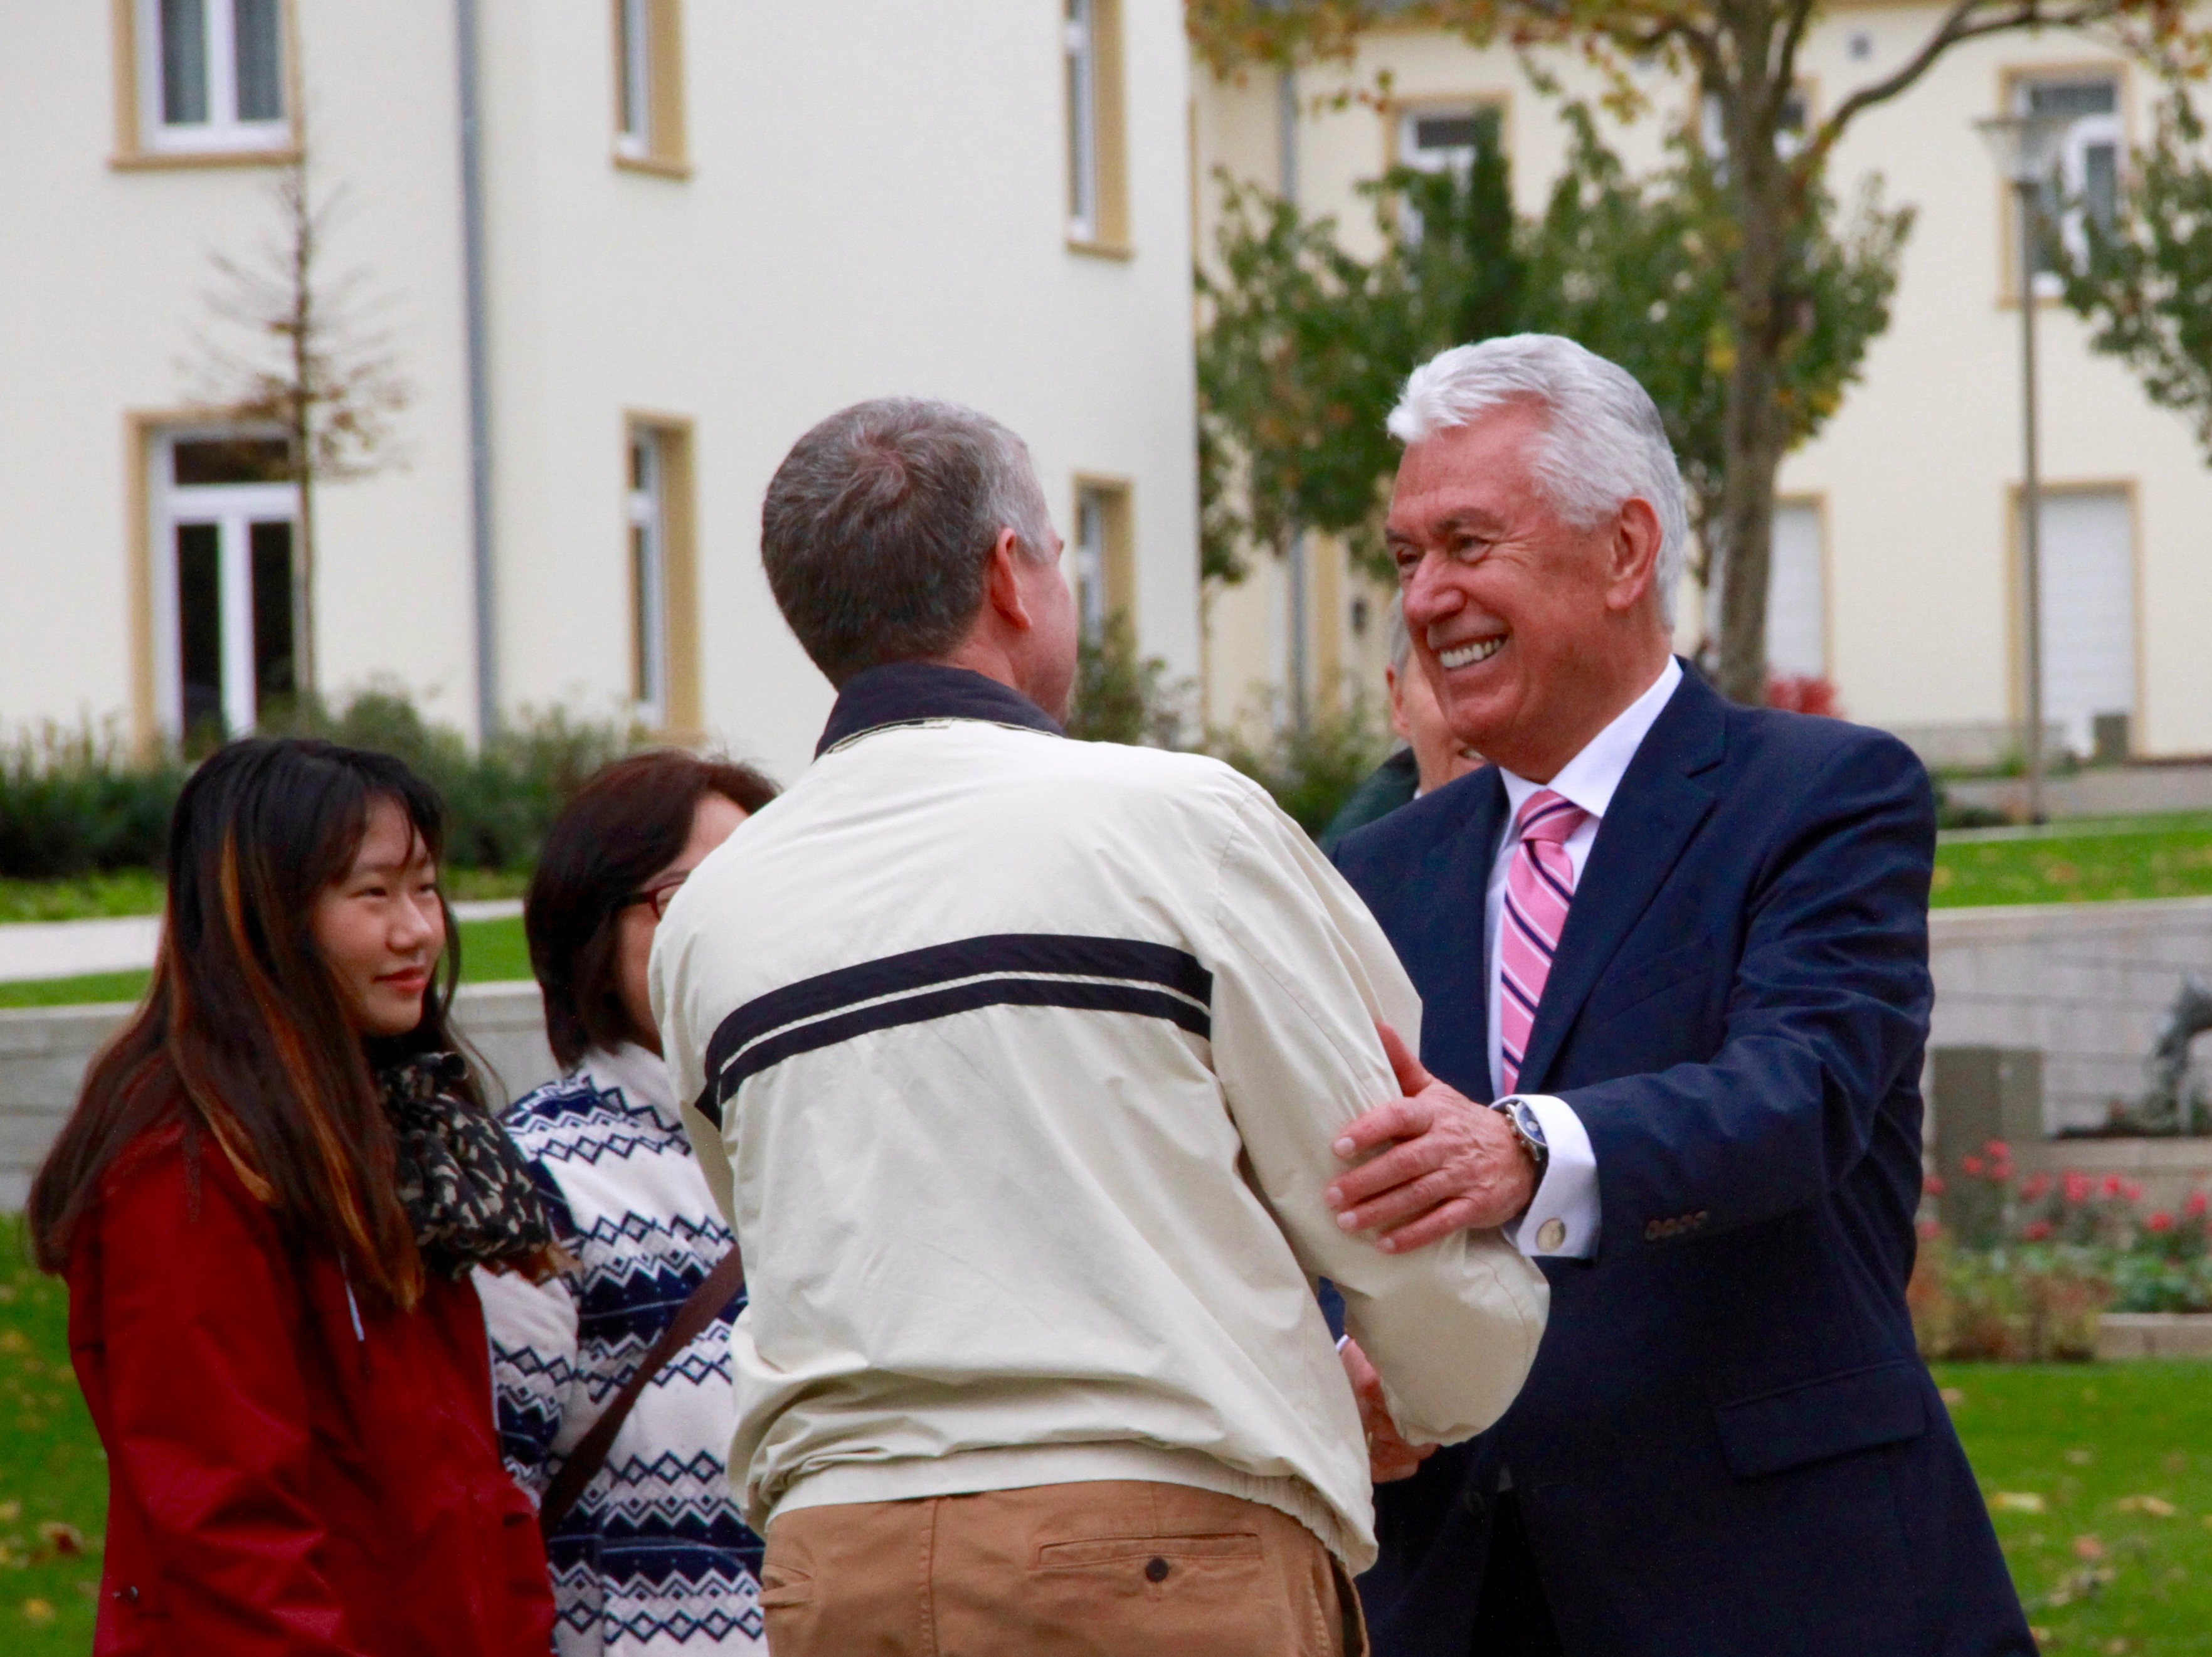 Elder Dieter F. Uchtdorf greets visitors to the Frankfurt Germany Temple grounds on Saturday, Oct. 19, 2019.